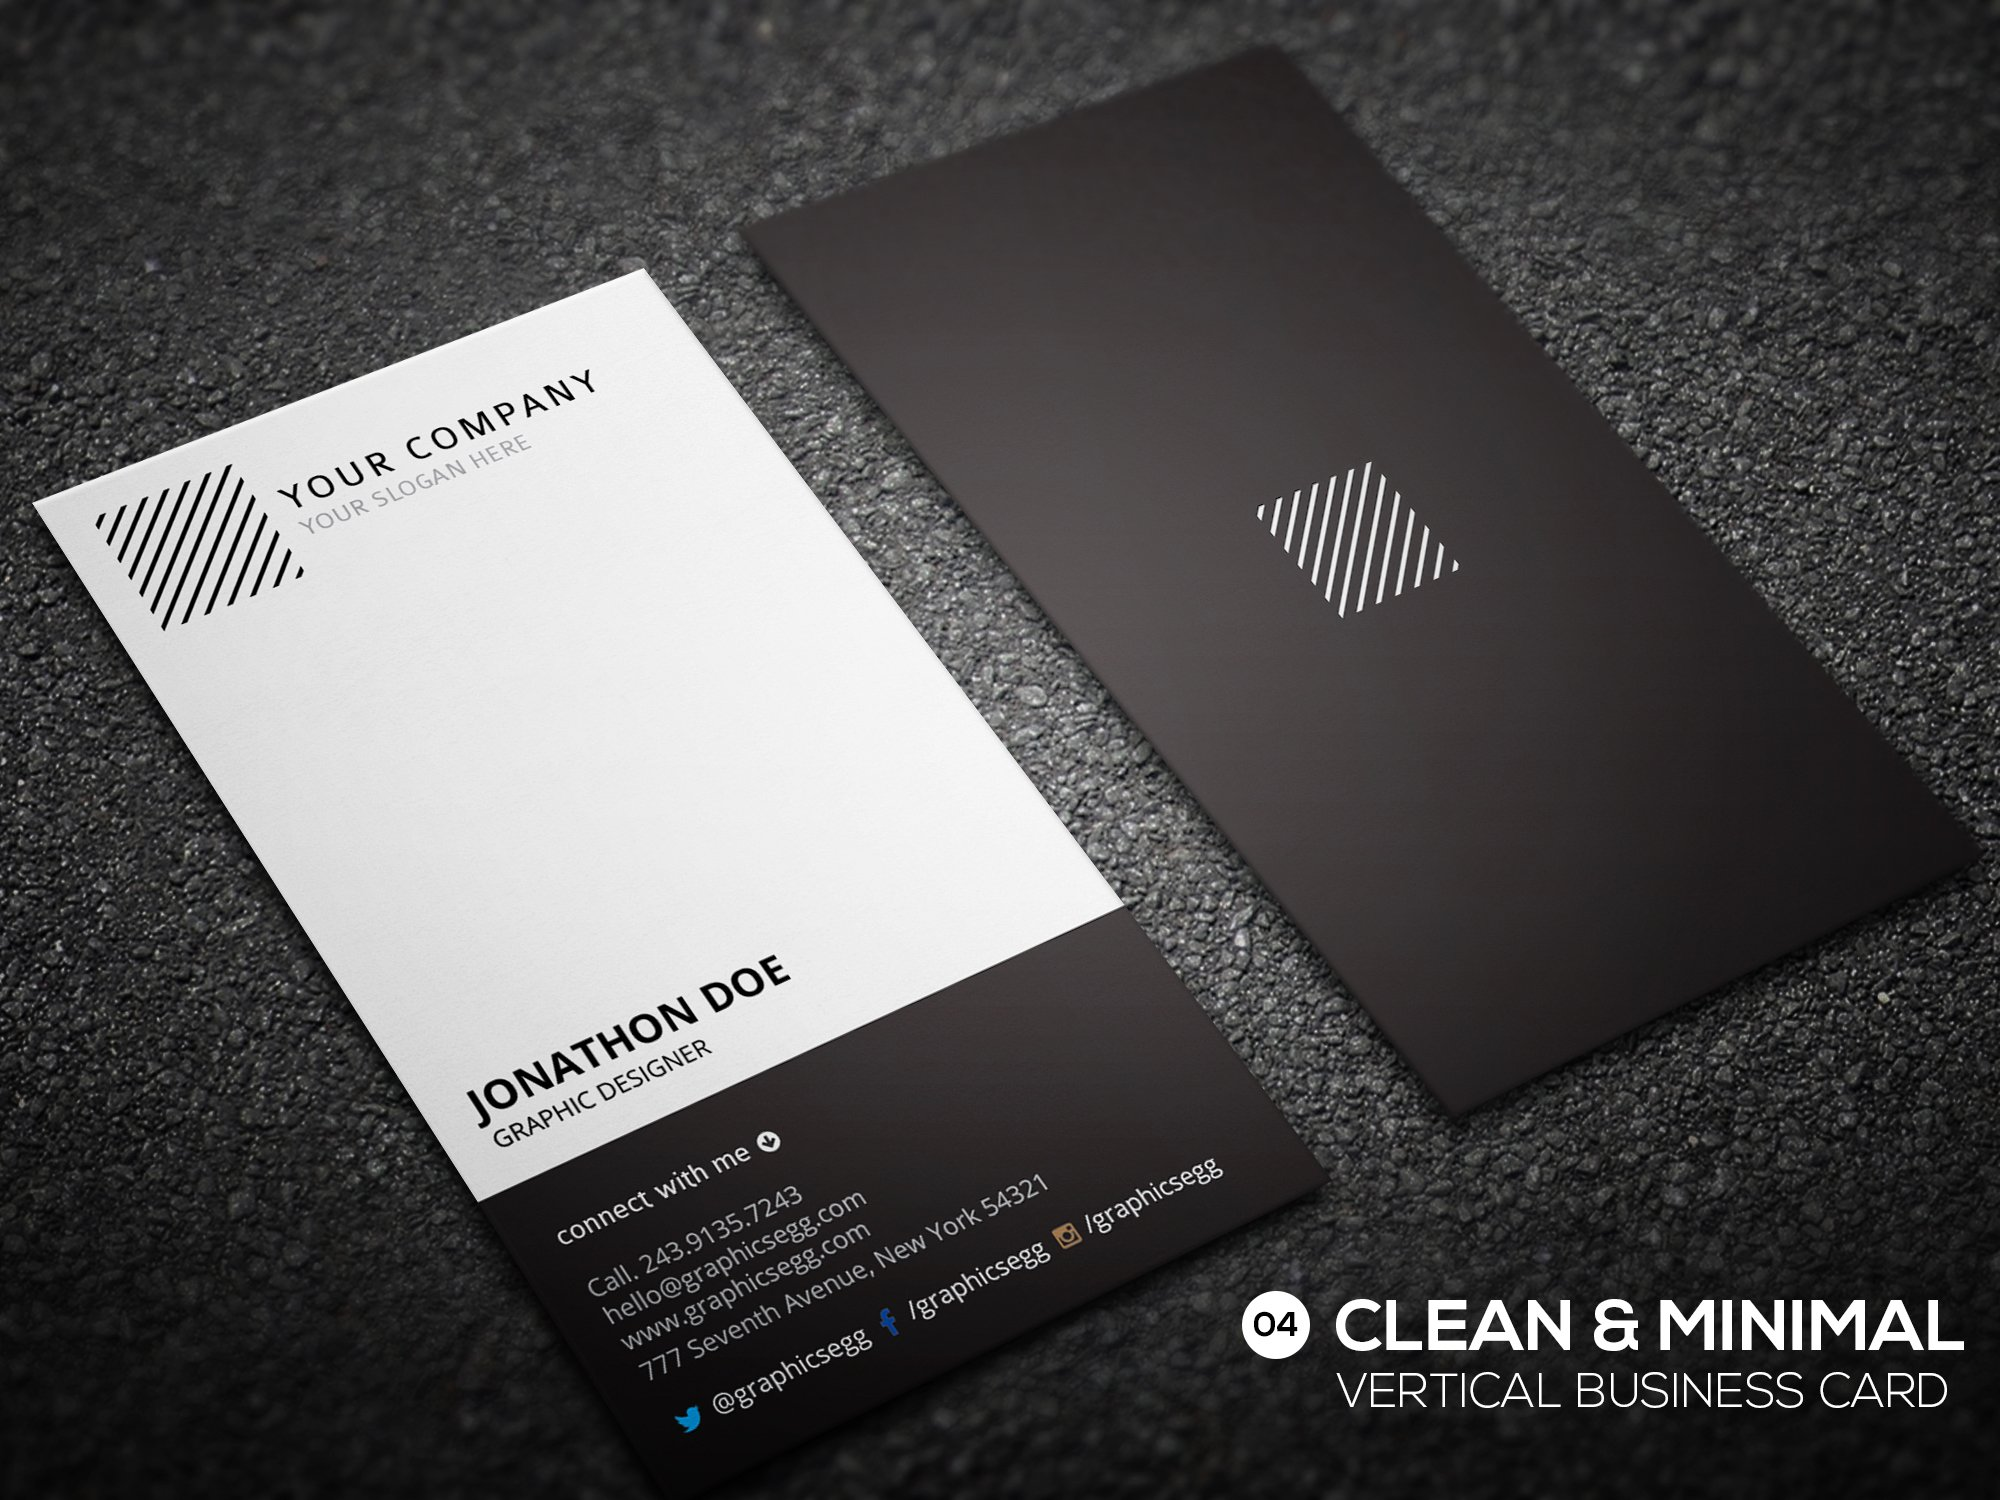 Clean minimal vertical business card business card templates clean minimal vertical business card business card templates creative market alramifo Image collections